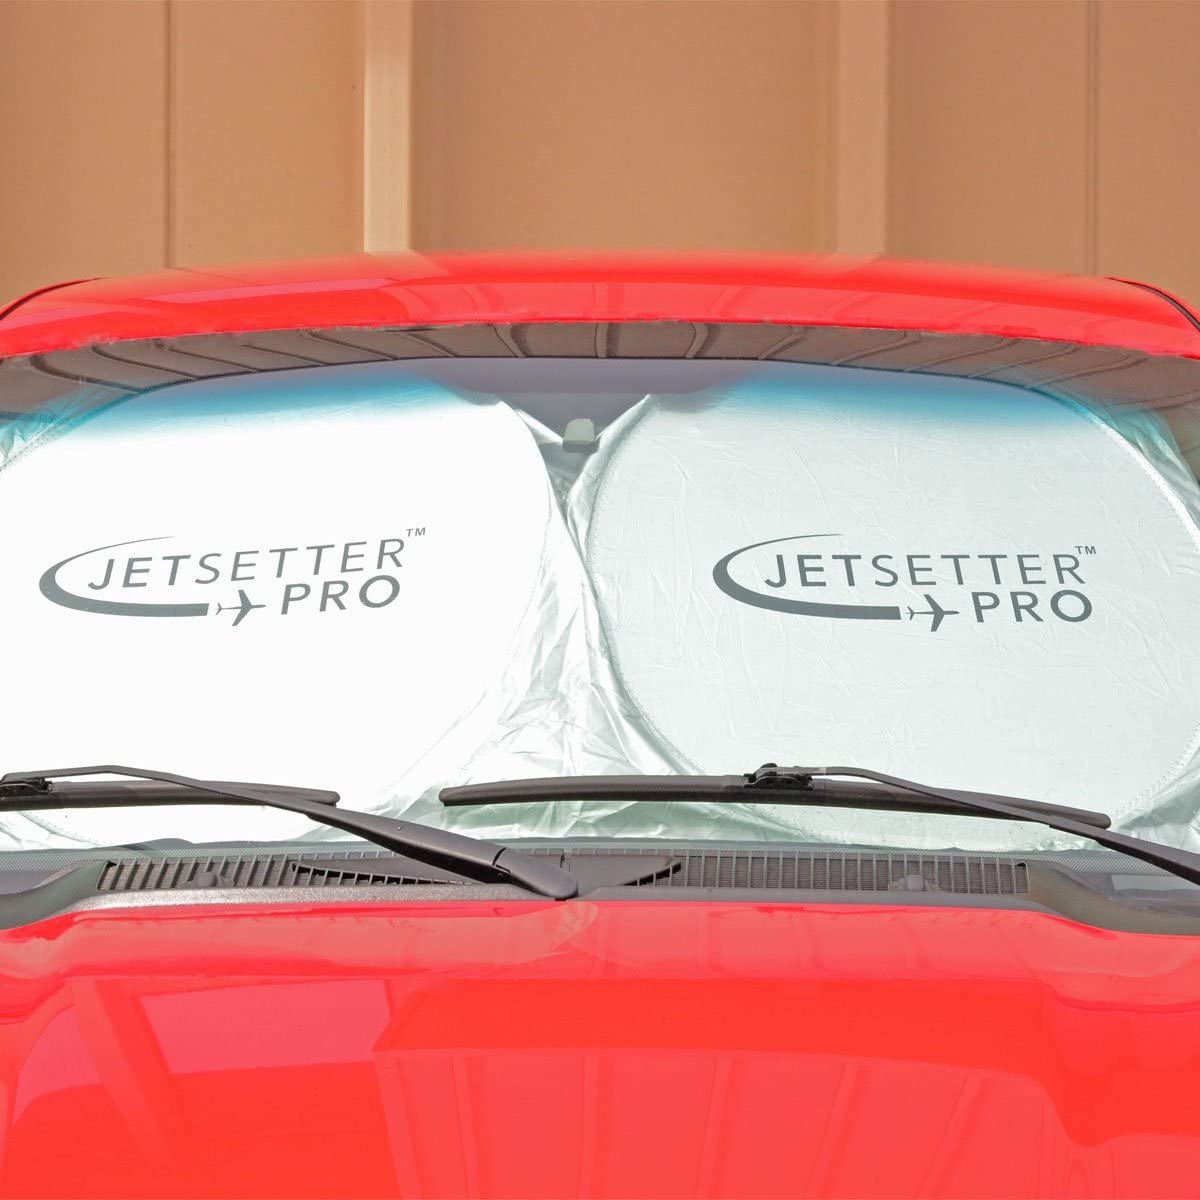 Interior Damage and Fading Easy and Convenient Pop Out Design Shields Your Vehicle Interior From Harmful UV Rays Prevent Burns JetSetter Pro Jumbo Flexi-shield Sunshade Nylon Material 100/%